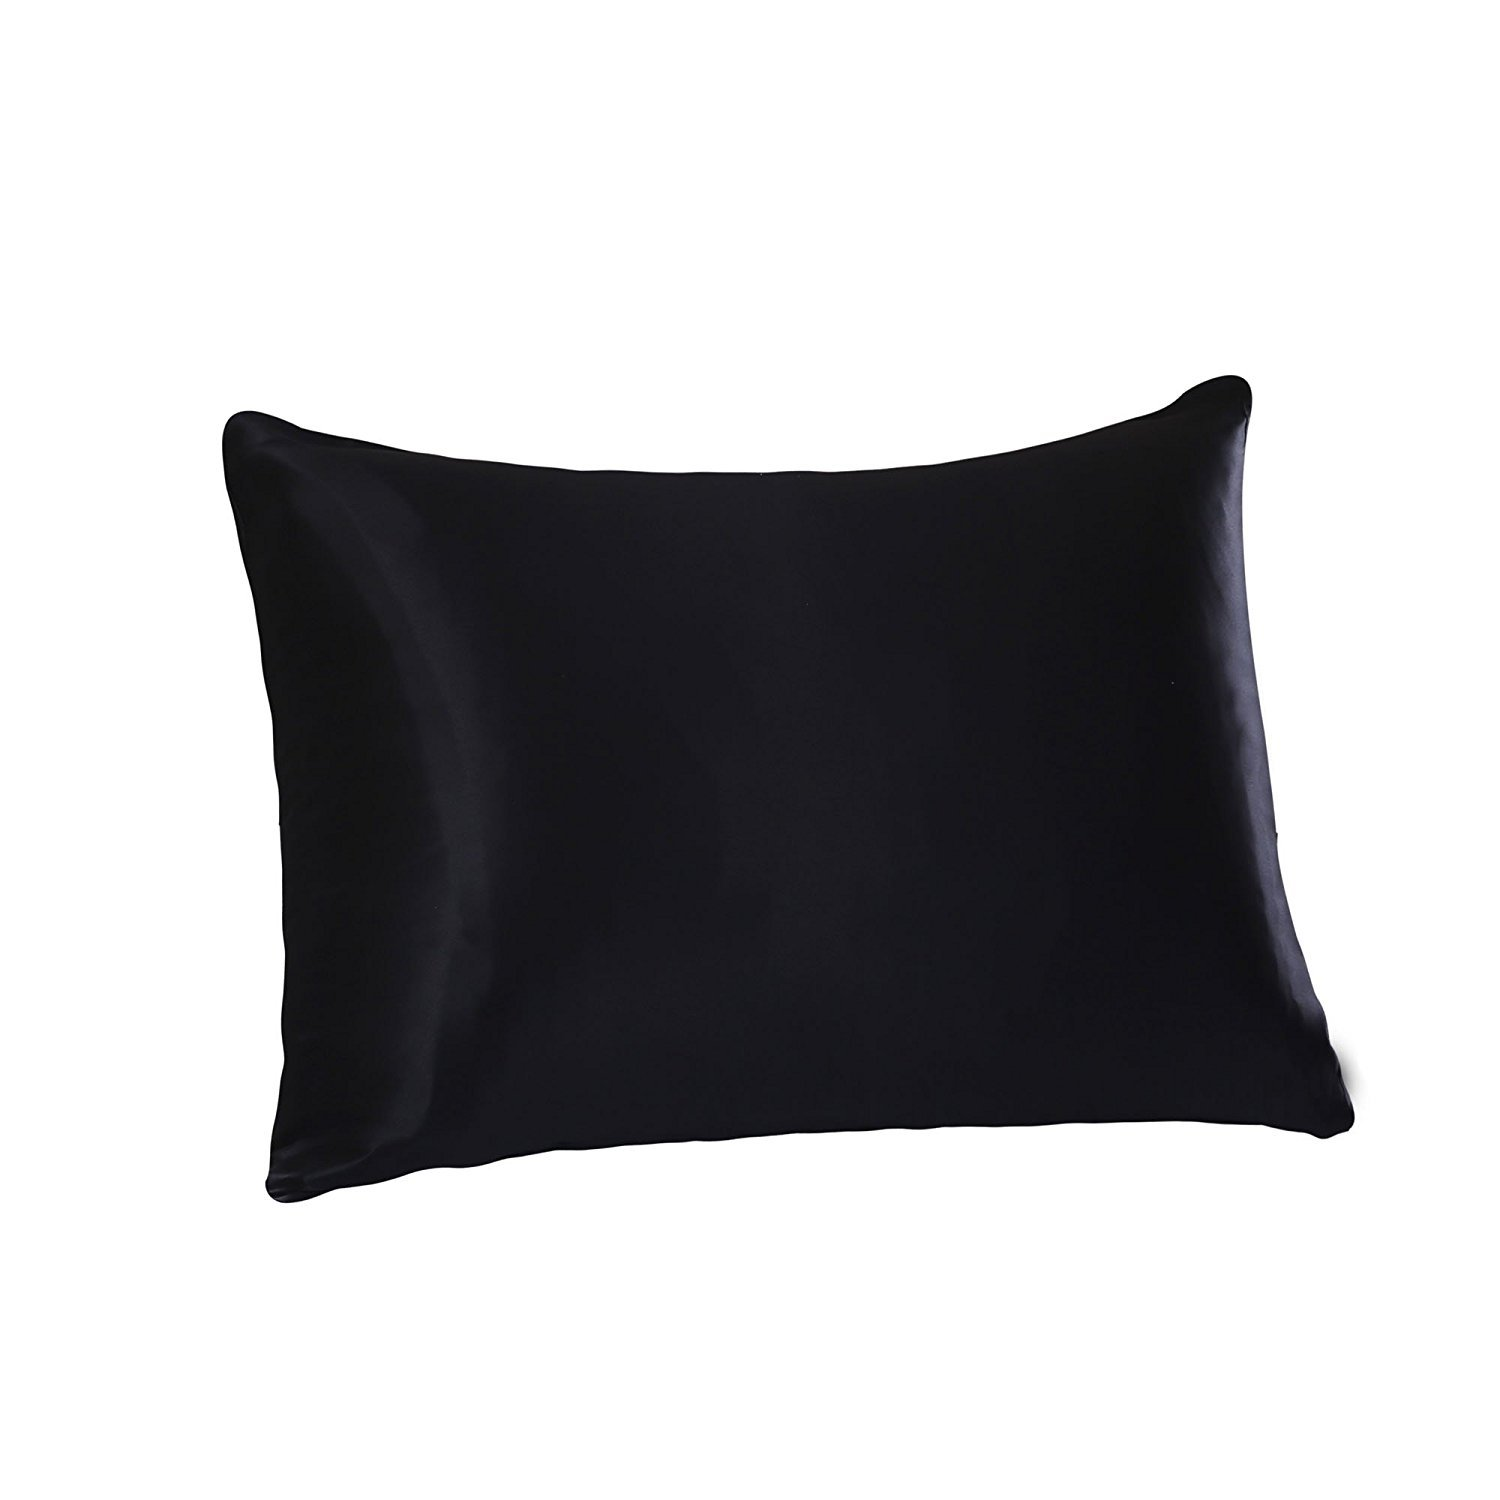 Tim & Tina 22 Momme 100% Pure Mulberry Luxury Silk Pillowcase, Good for Skin and Hair, Facial Beauty (Toddler/Travel, Black)